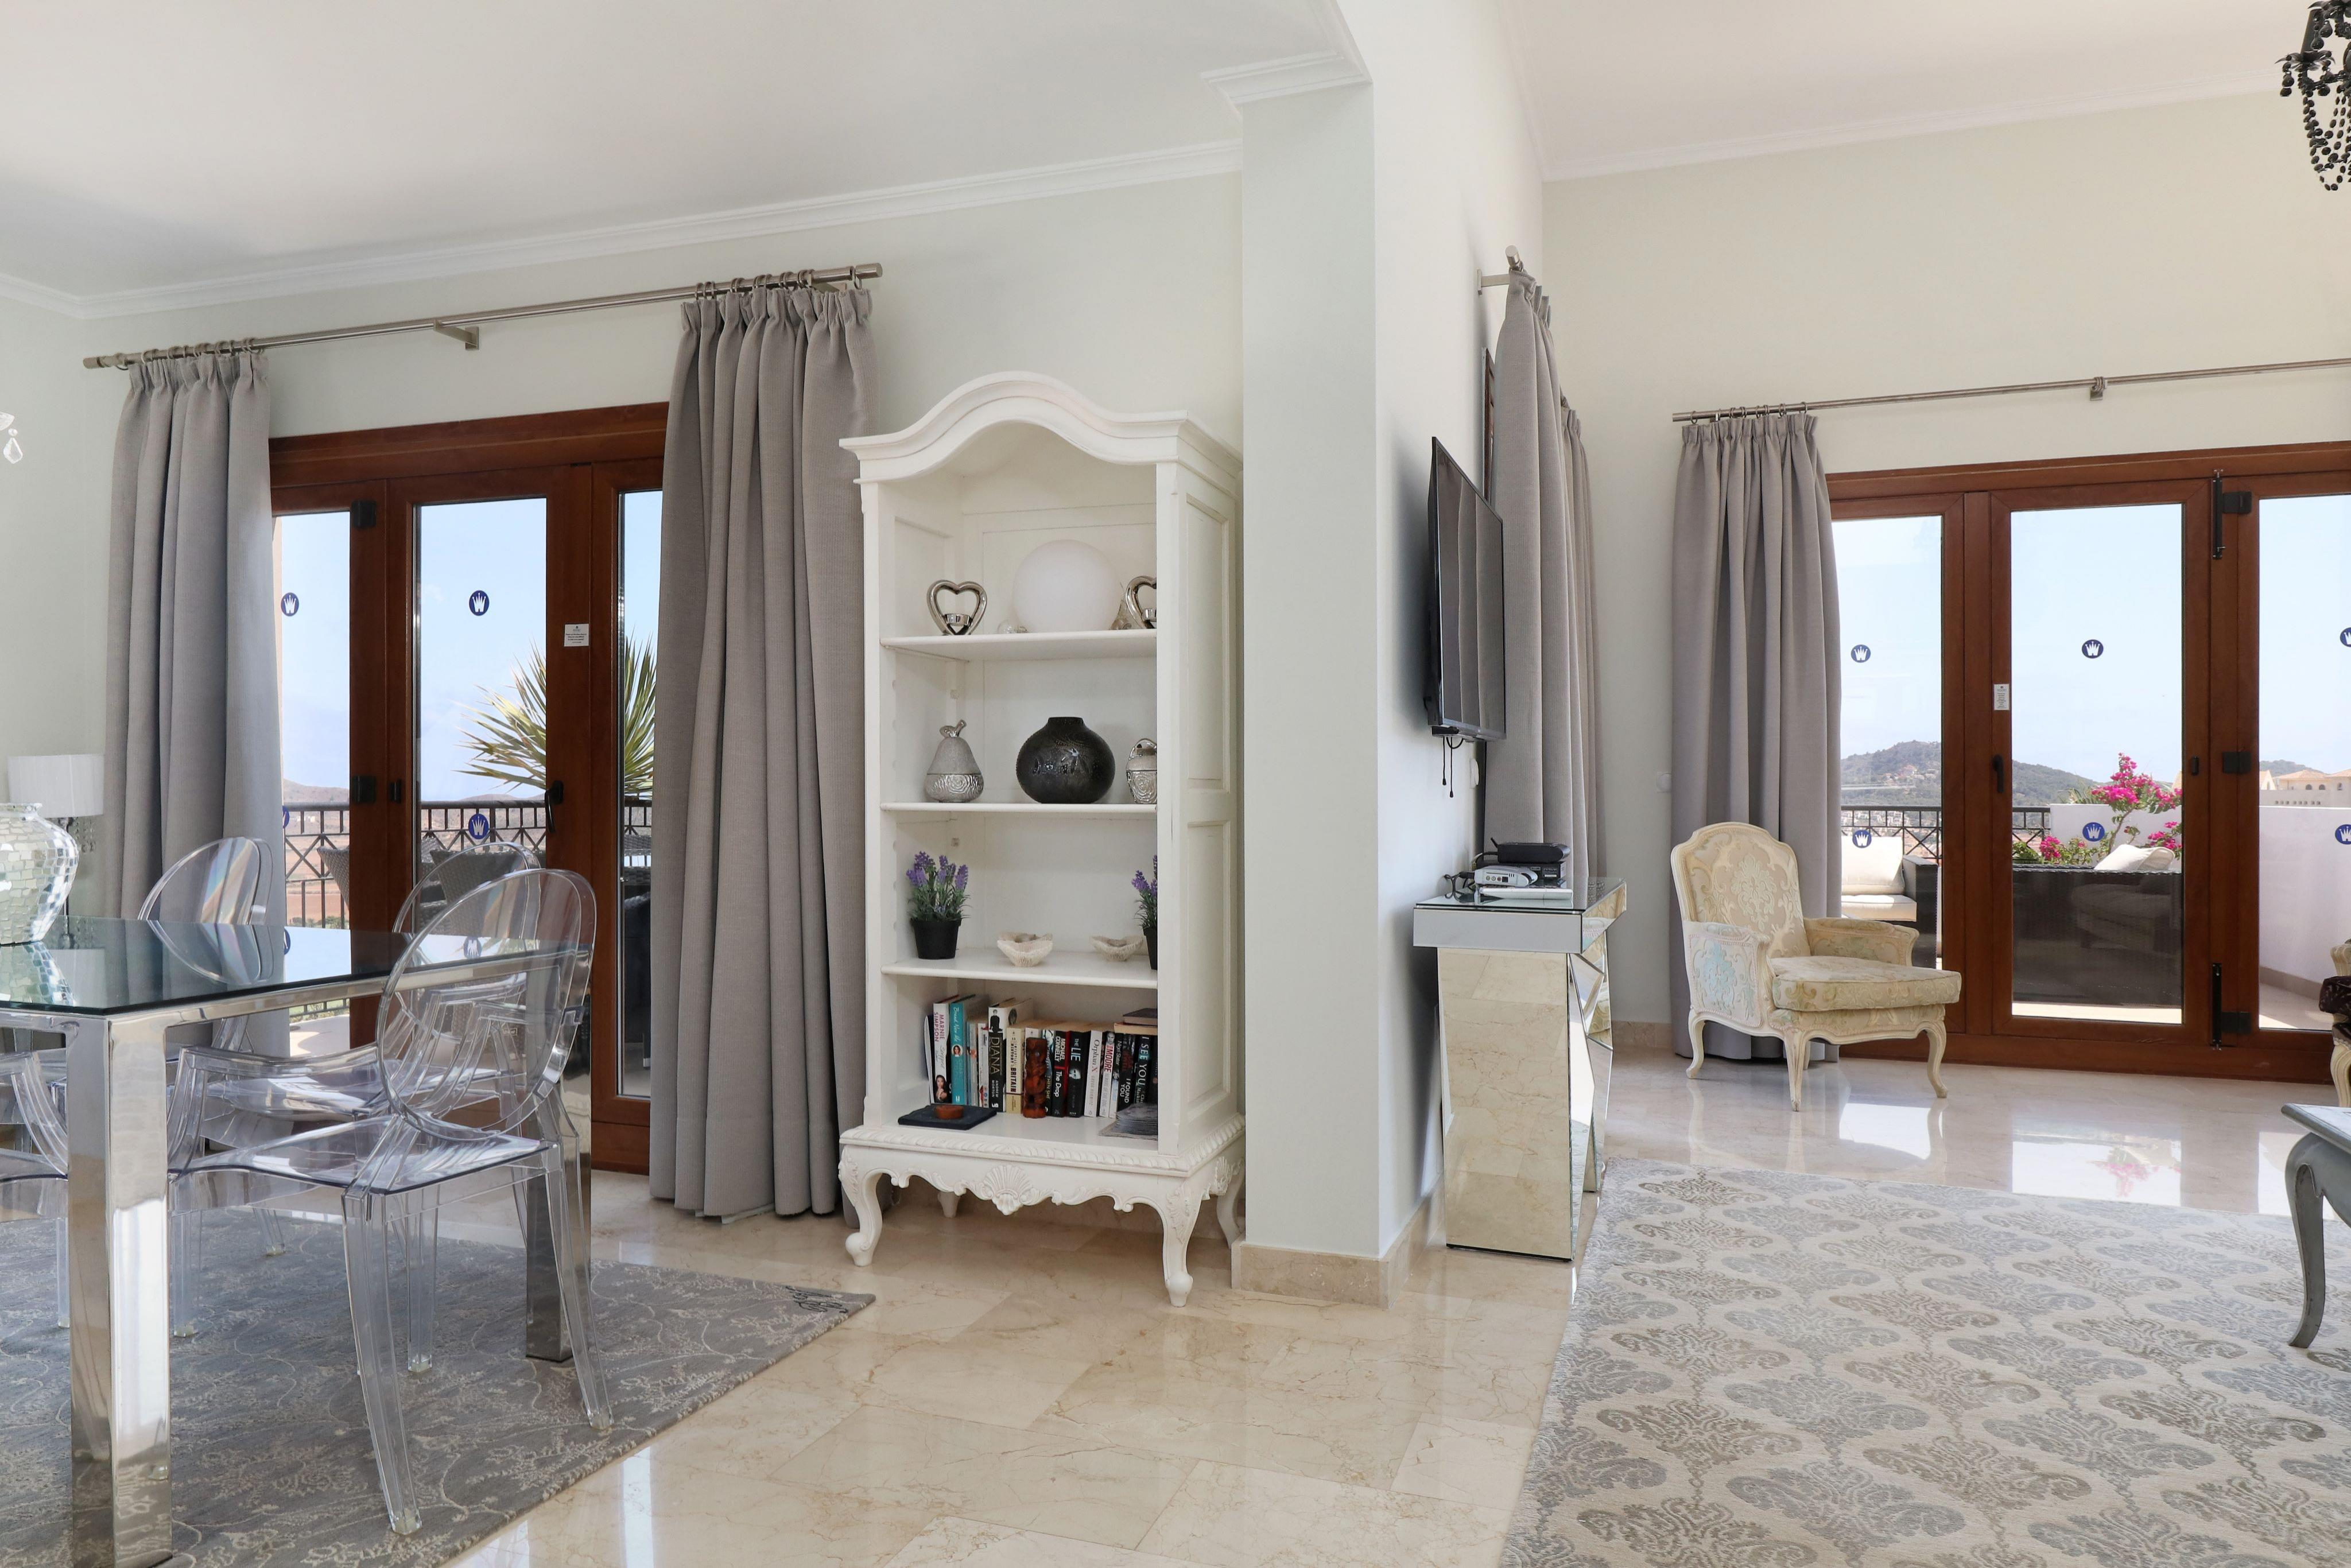 La Manga Club Resort - Buena Vista 561 4 Bedrooms, for rent